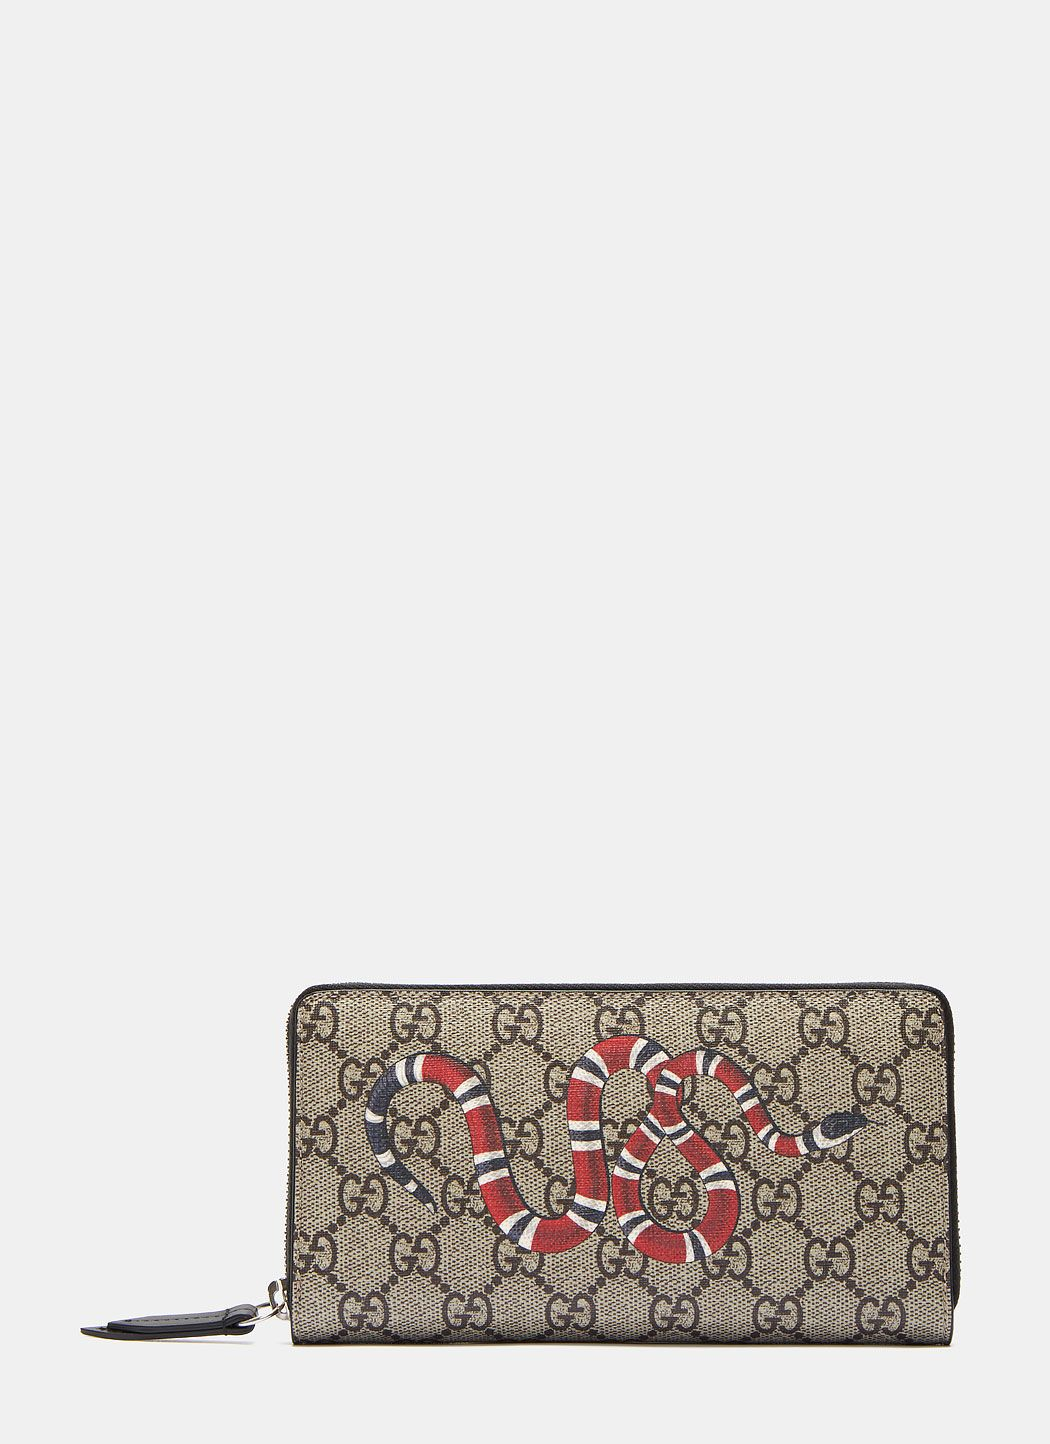 b0bbecdef6c1 GUCCI Men'S Gg Snake Long Zipped Wallet In Brown And Black. #gucci ...